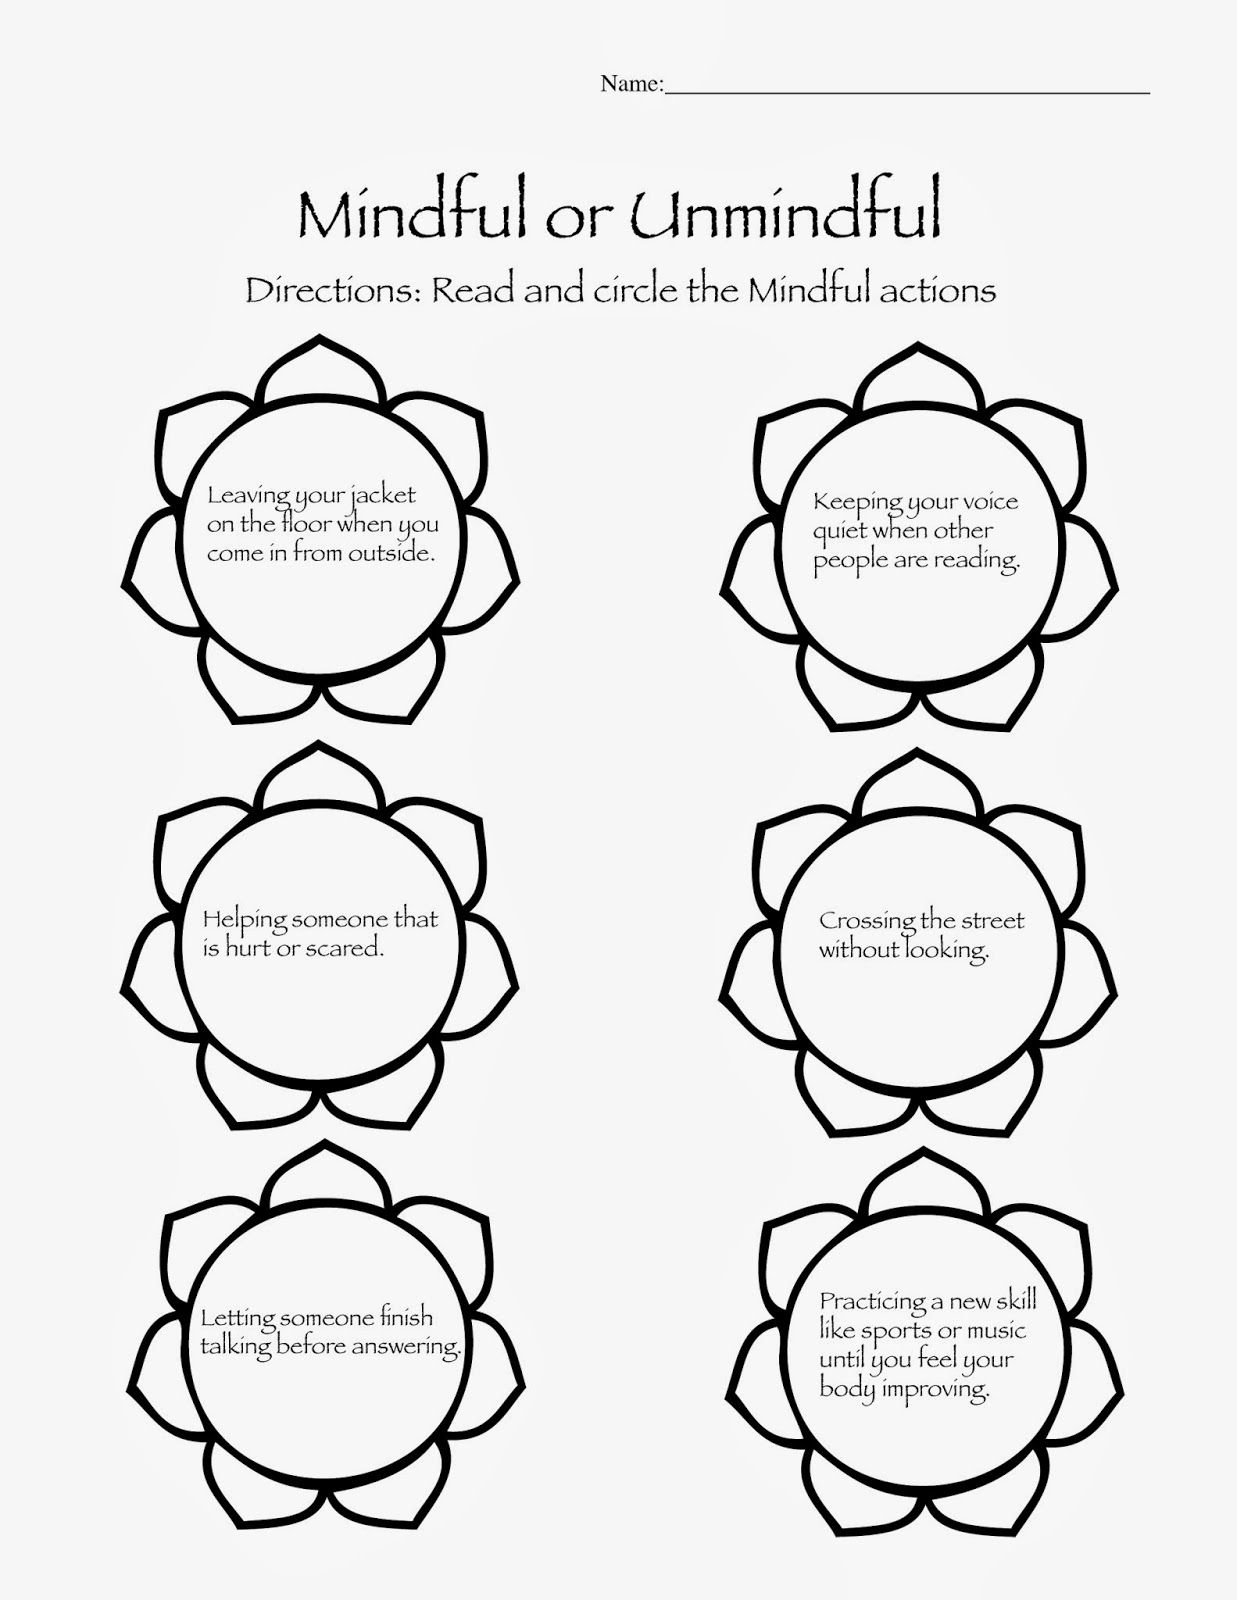 Branch Habitat Mindful Homeschool Activity Sheet And